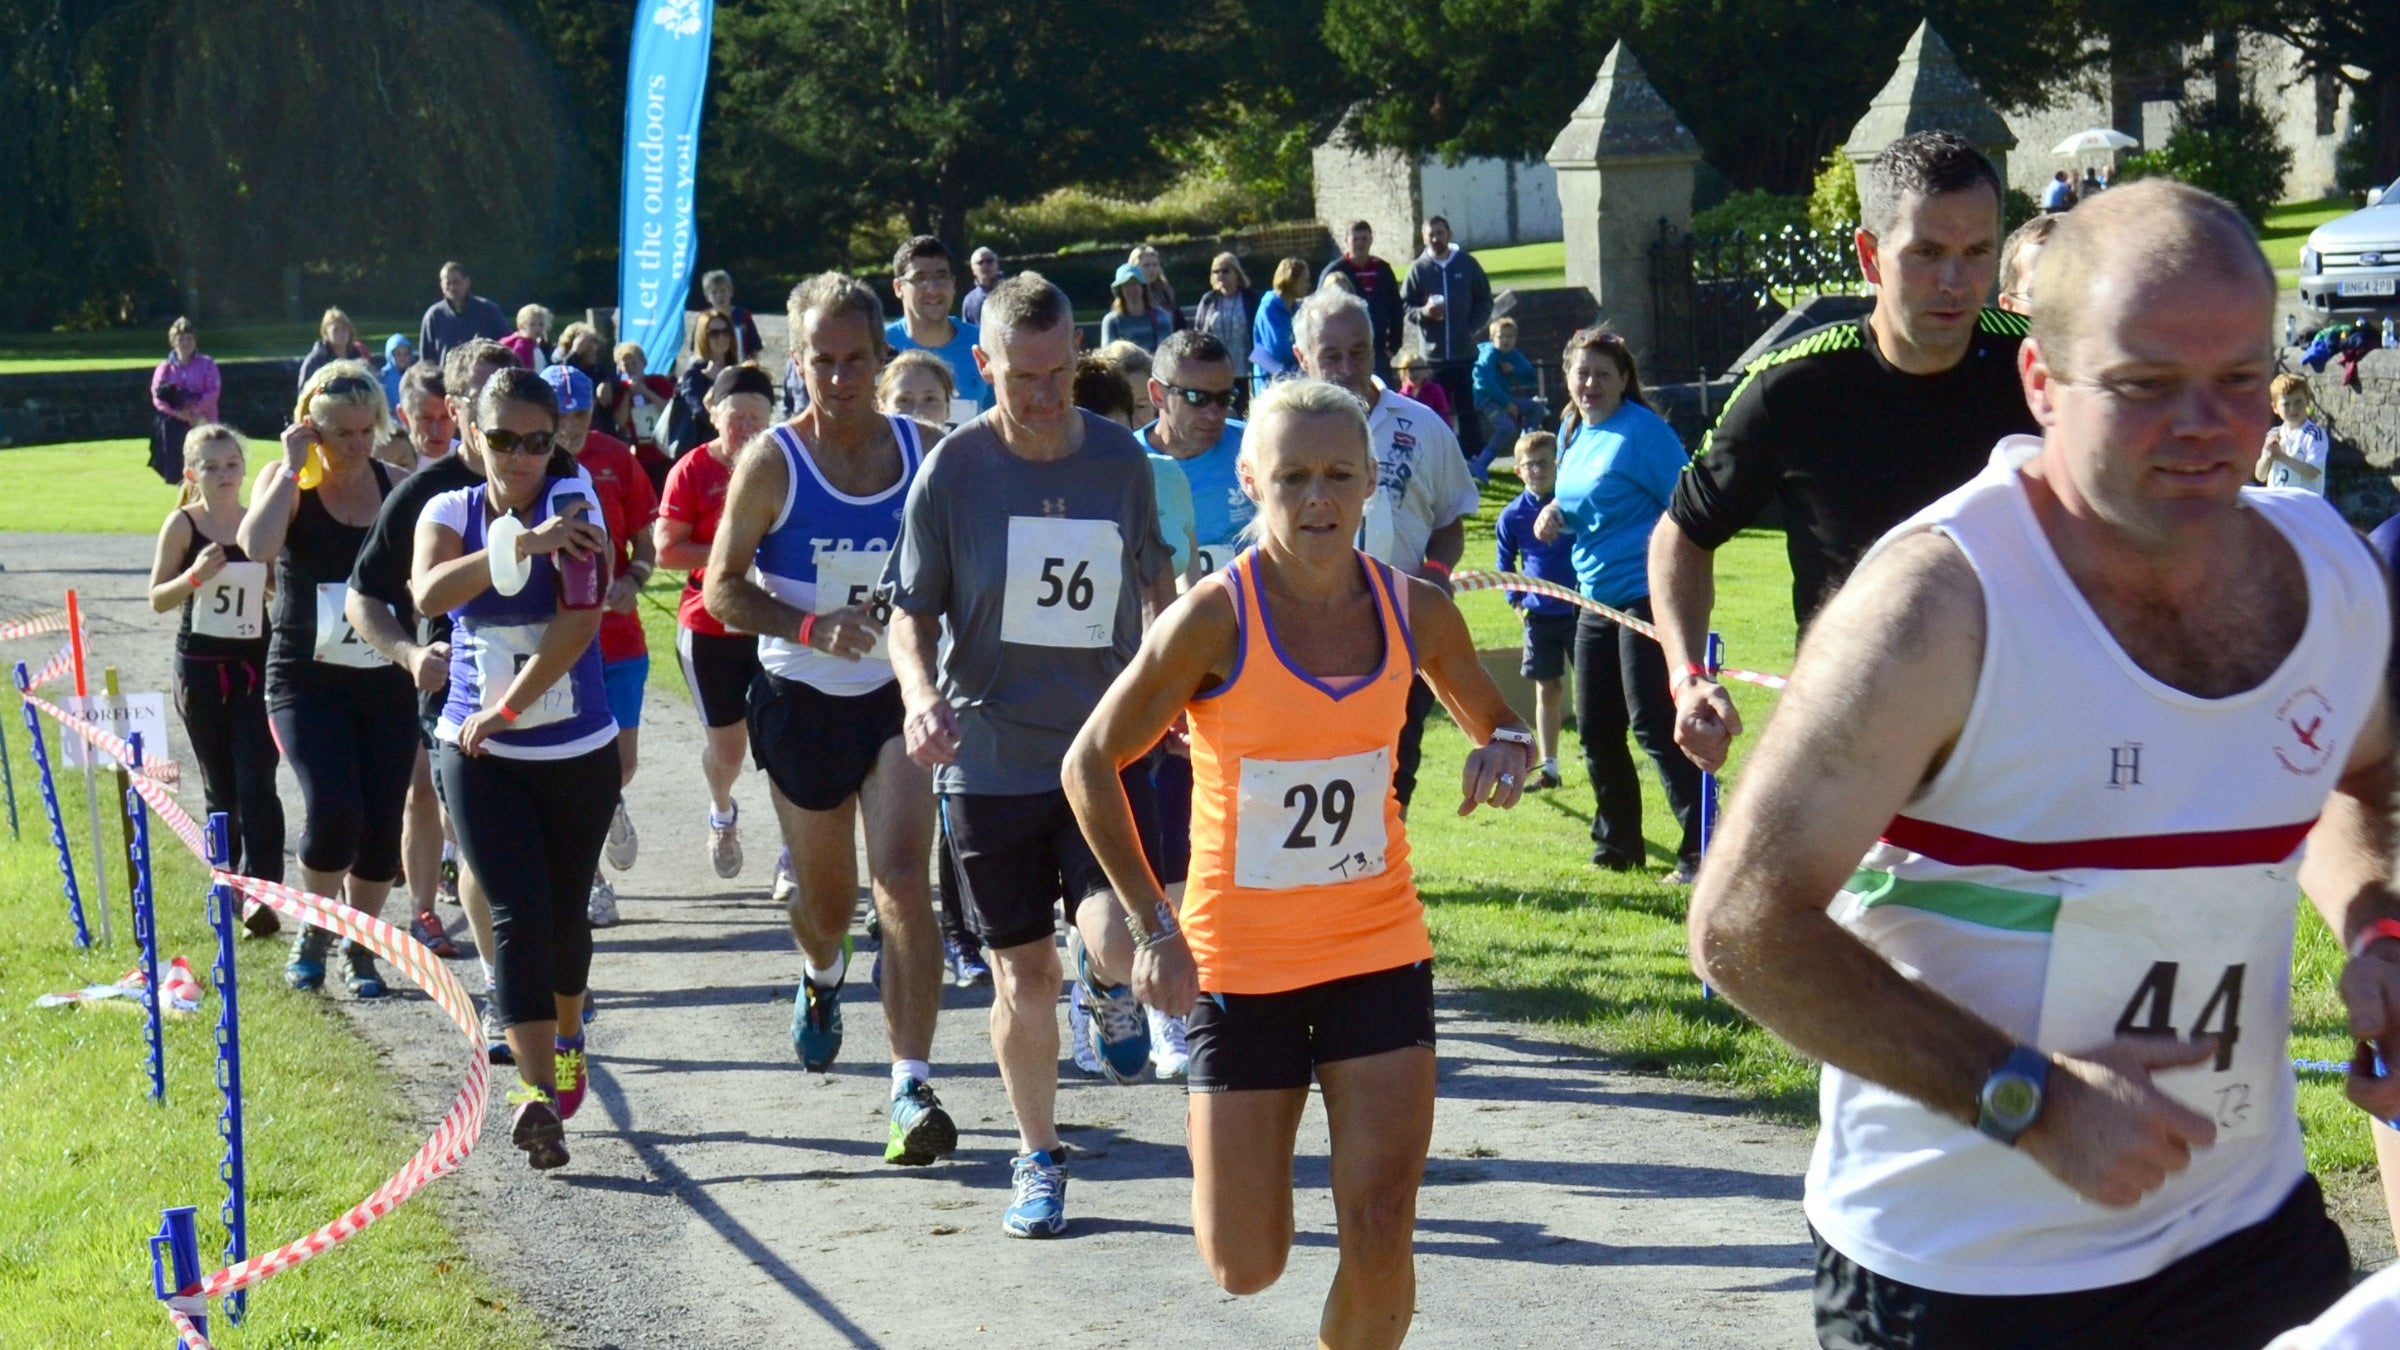 A group of runners at Dinefwr Park